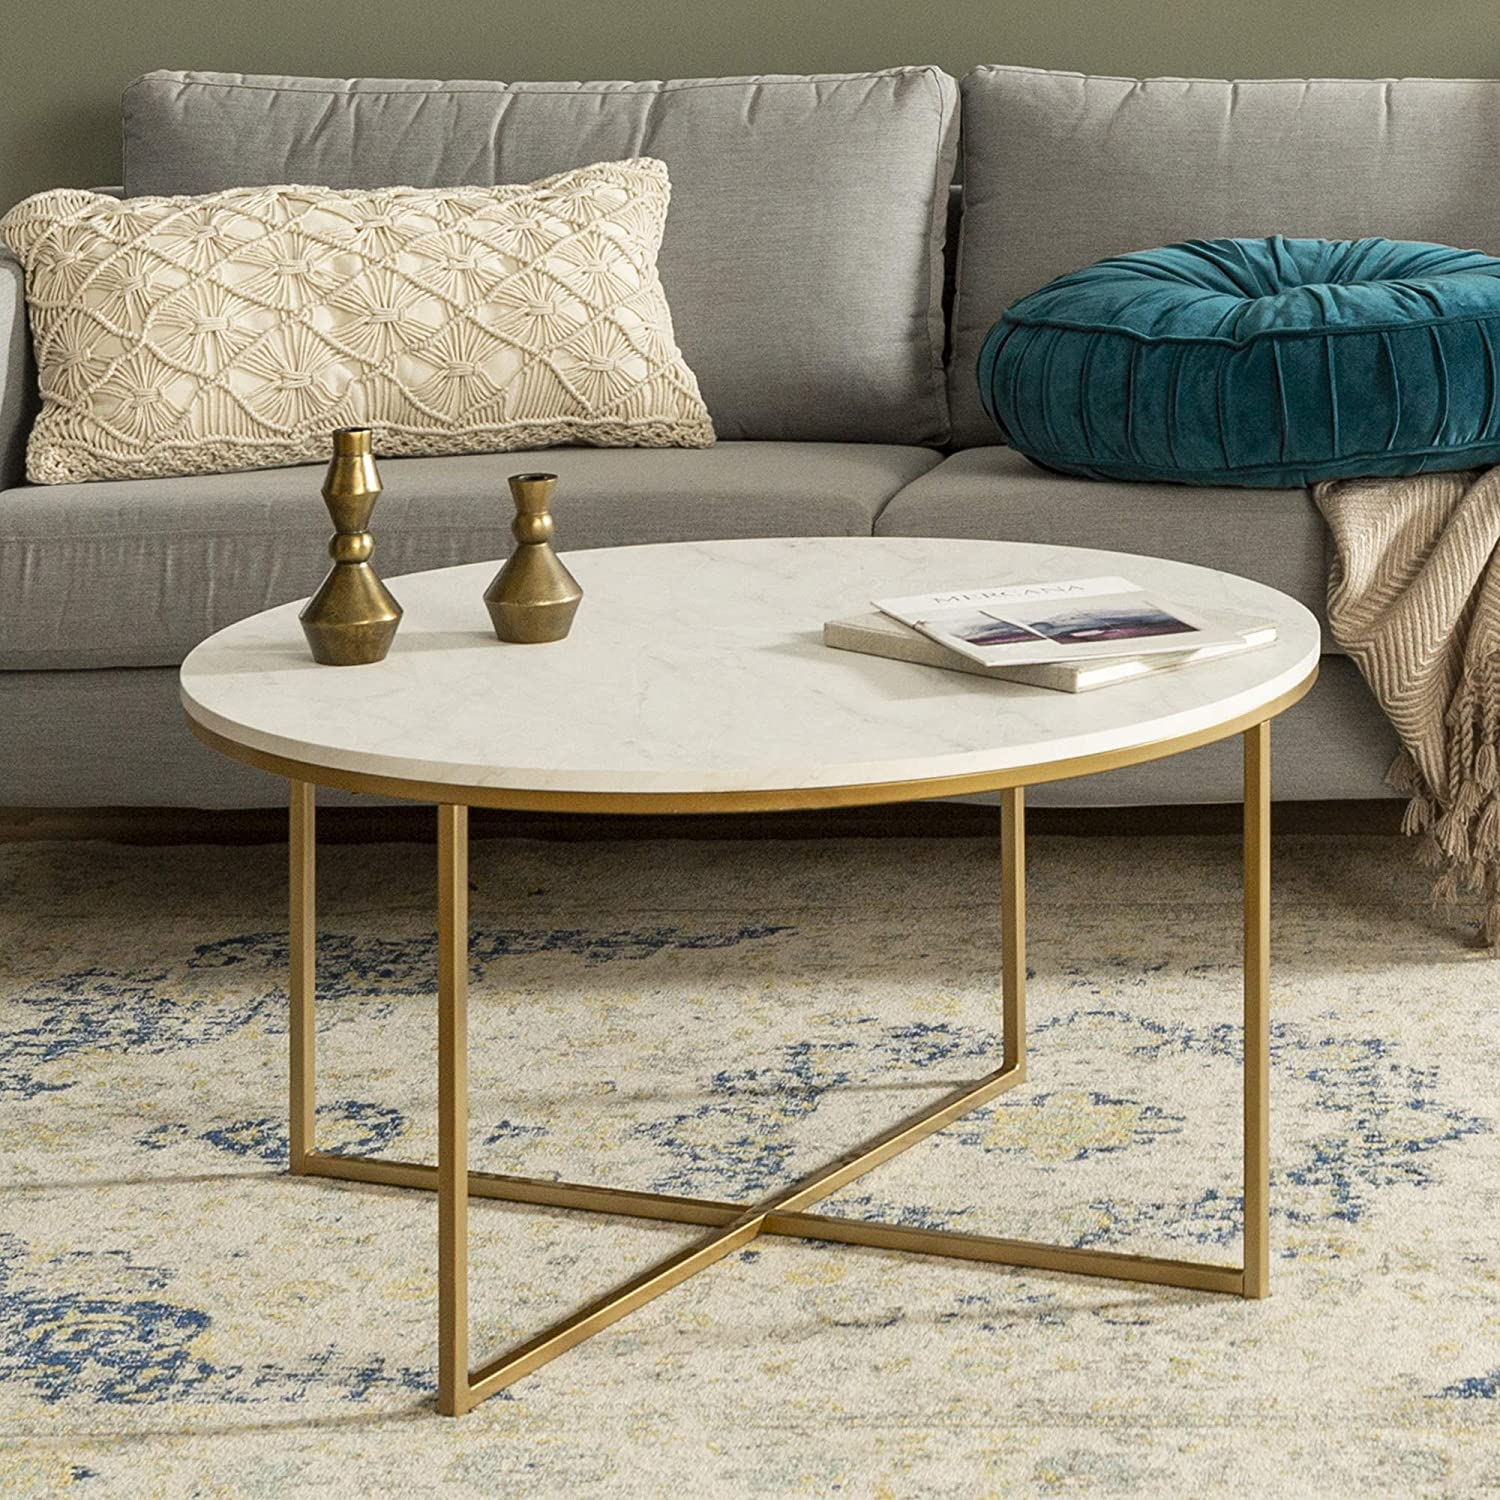 - Modern Round Coffee Accent Table Living Room: Amazon.ca: Home